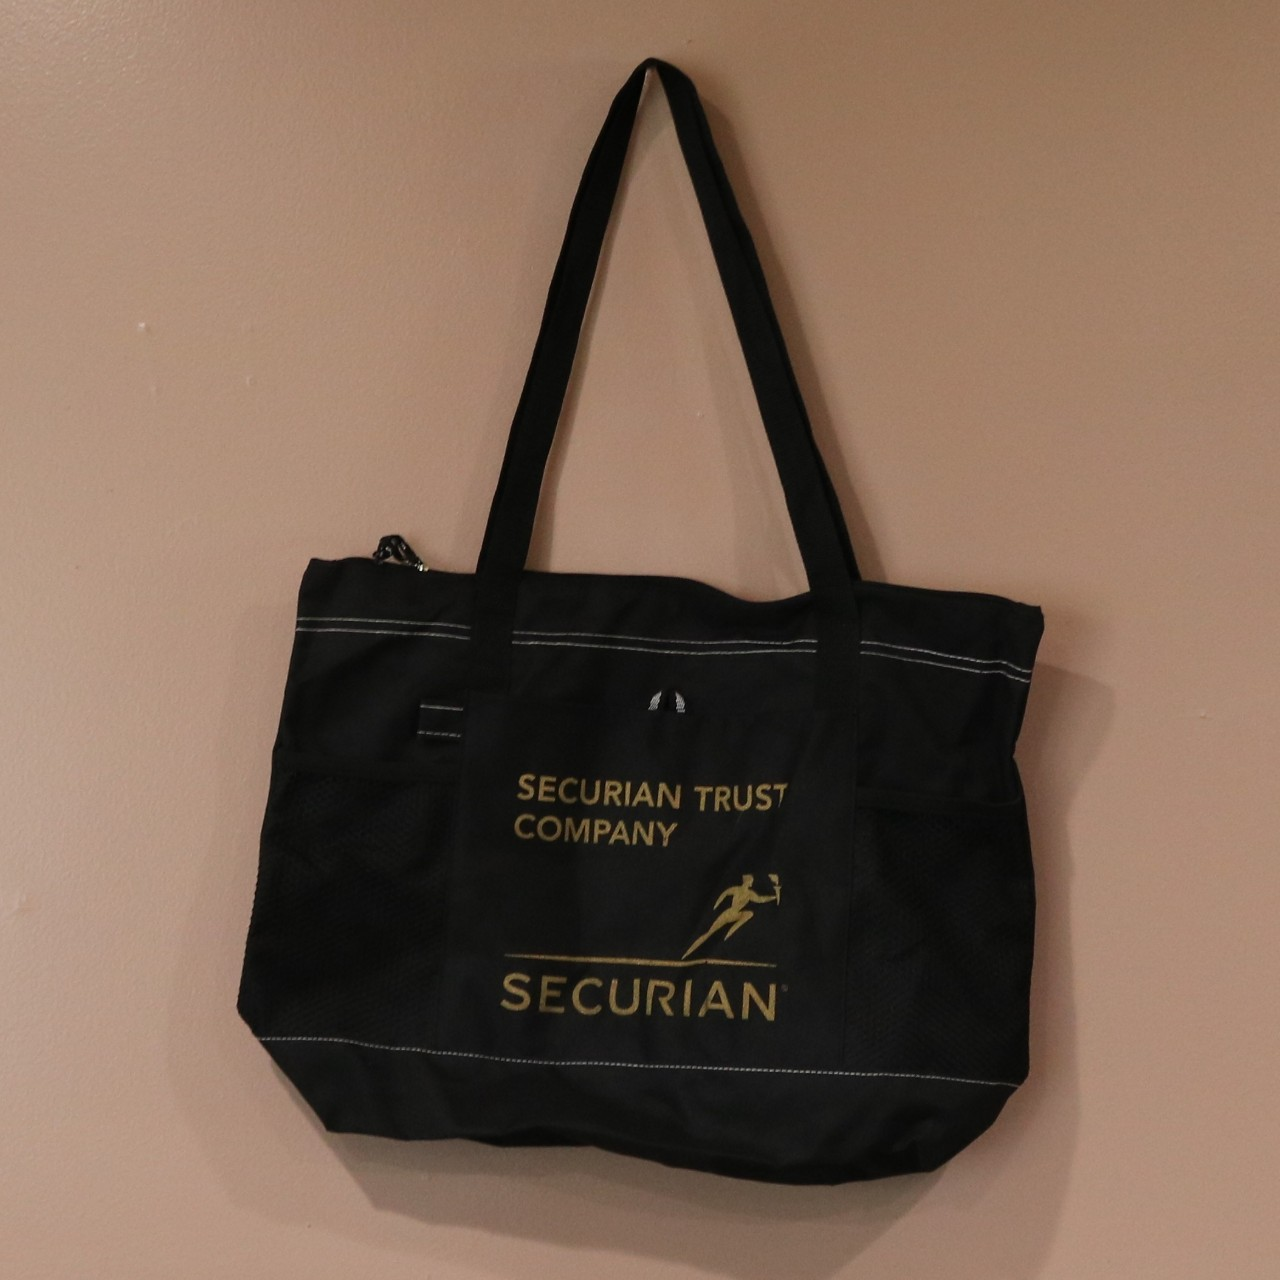 Product Image 1 - Securian Trust Tote Bag   Gently